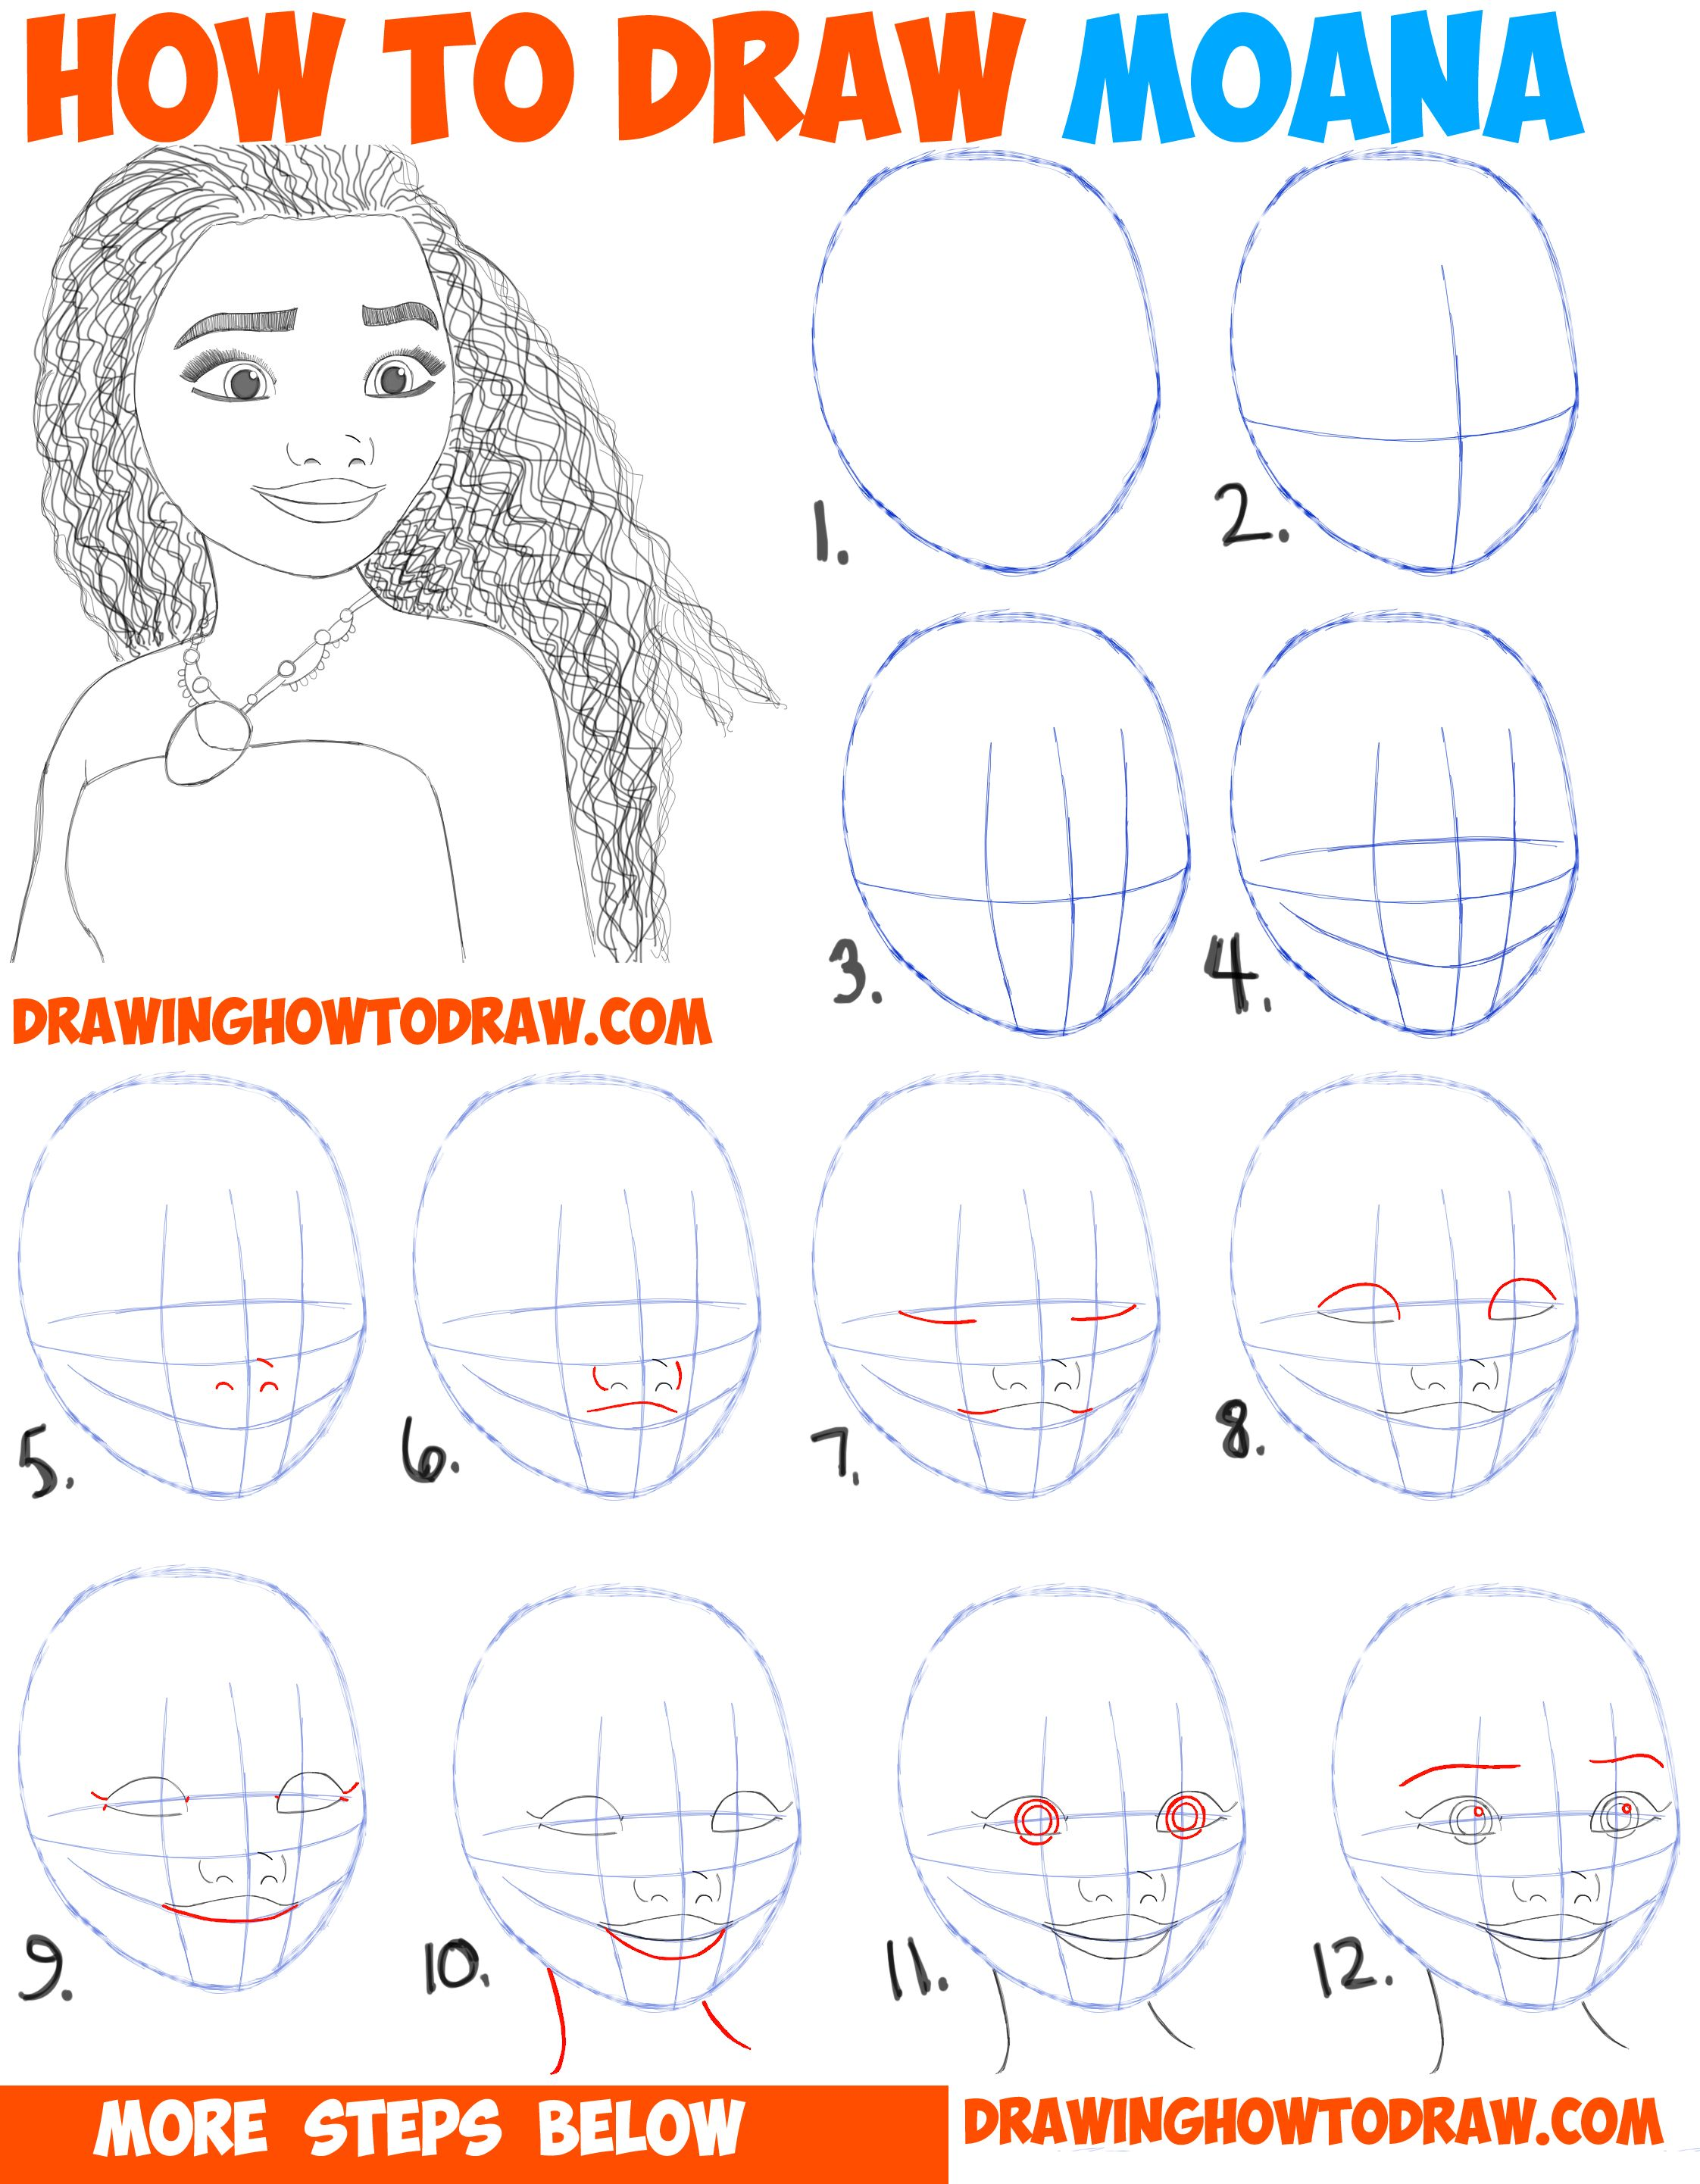 Uncategorized Simple Drawing For Kids Step By Step how to draw moana easy step by drawing tutorial for kids and beginners